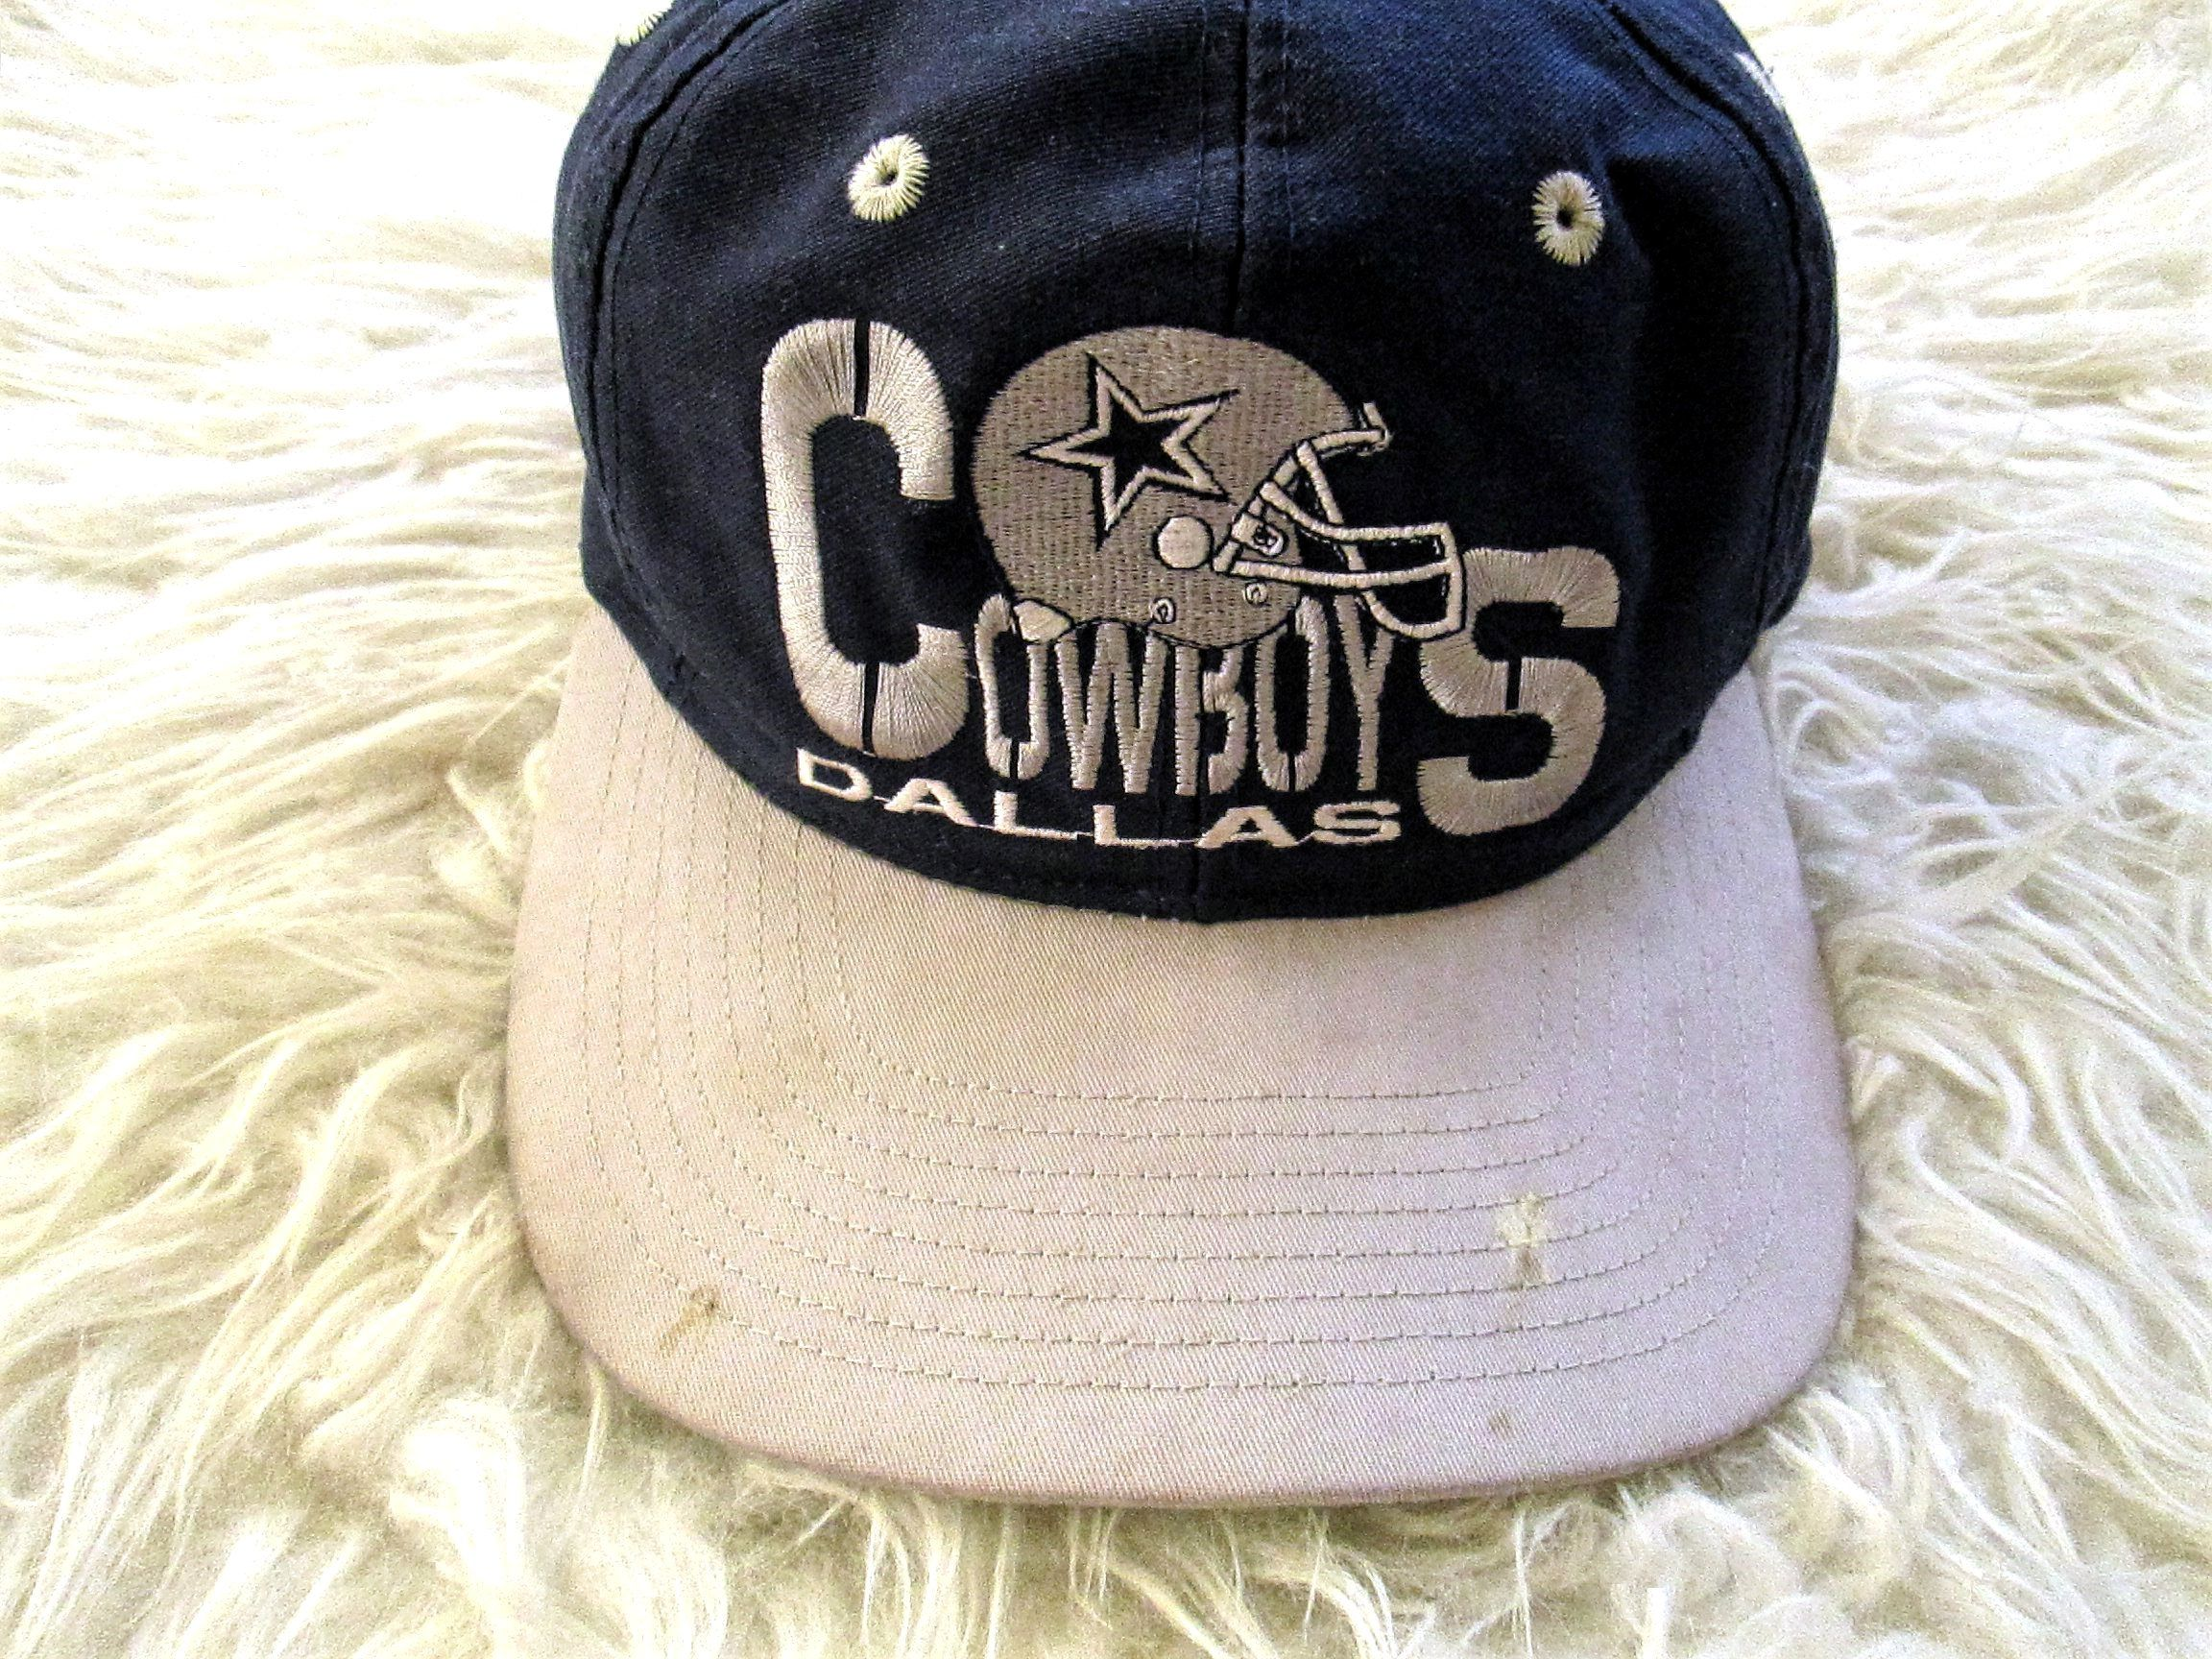 1628c5392  Vintage  90s  DALLAS  dallasCOWBOYS  Embroidered  Football  NFL  Snapback   Hat  snapbackhat  accessory  flatlay  sport  sporty  cowboys  fashion   style by ...